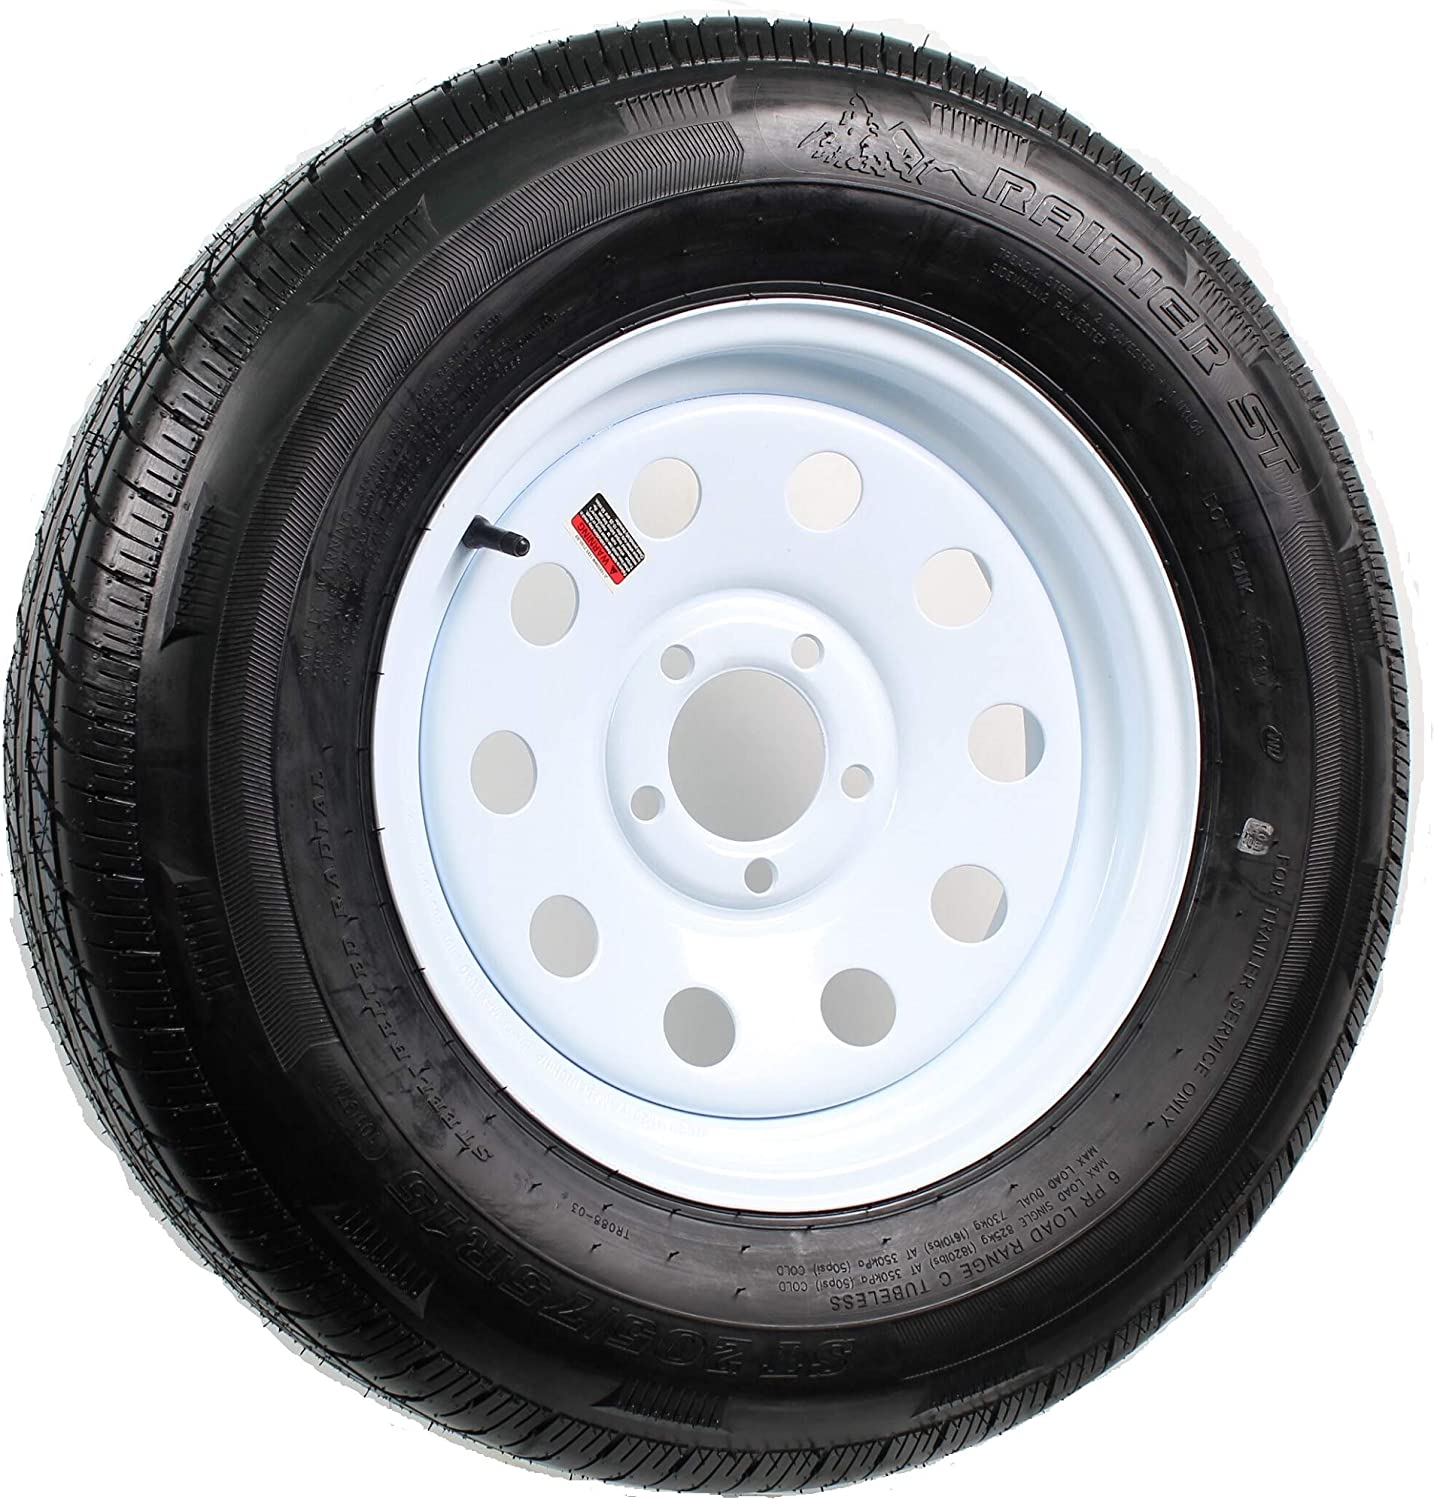 1x TRAILER TIRES ST 205//75R 15 Radial WhiteSpoke Wheels Rims 15